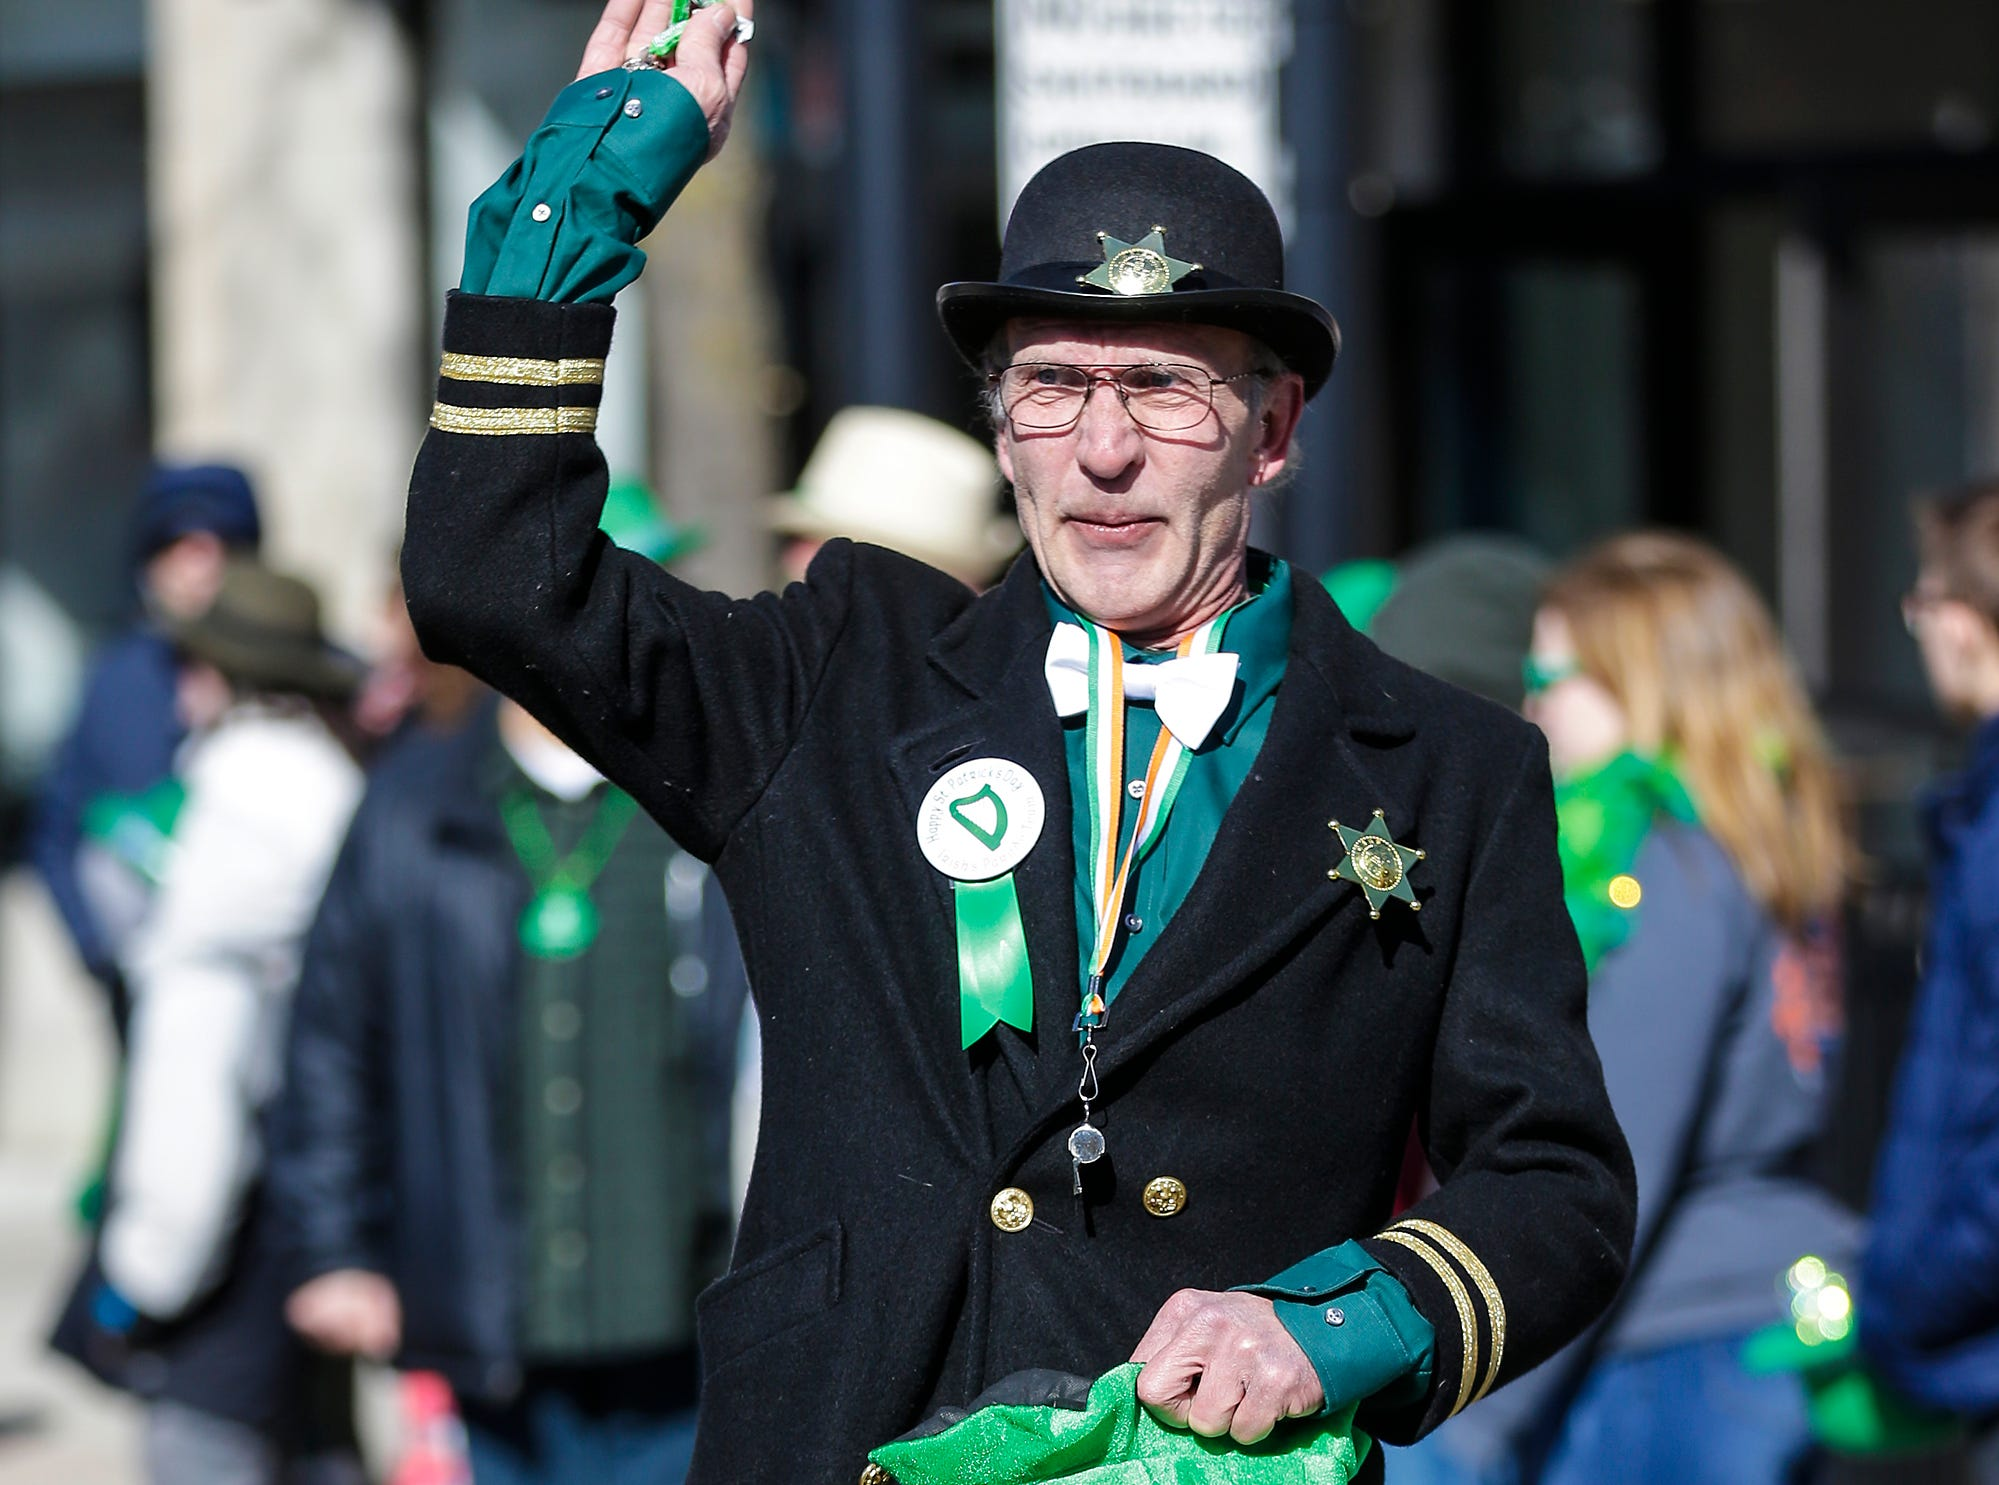 Terry Gruel walks with the Irish's Bar float in the City of Fond du Lac St. Patrick's Day Parade Saturday, March 16, 2019 on Main Street in downtown Fond du Lac. Hundreds of people lined the street to watch over 50 parade participants. Doug Raflik/USA TODAY NETWORK-Wisconsin